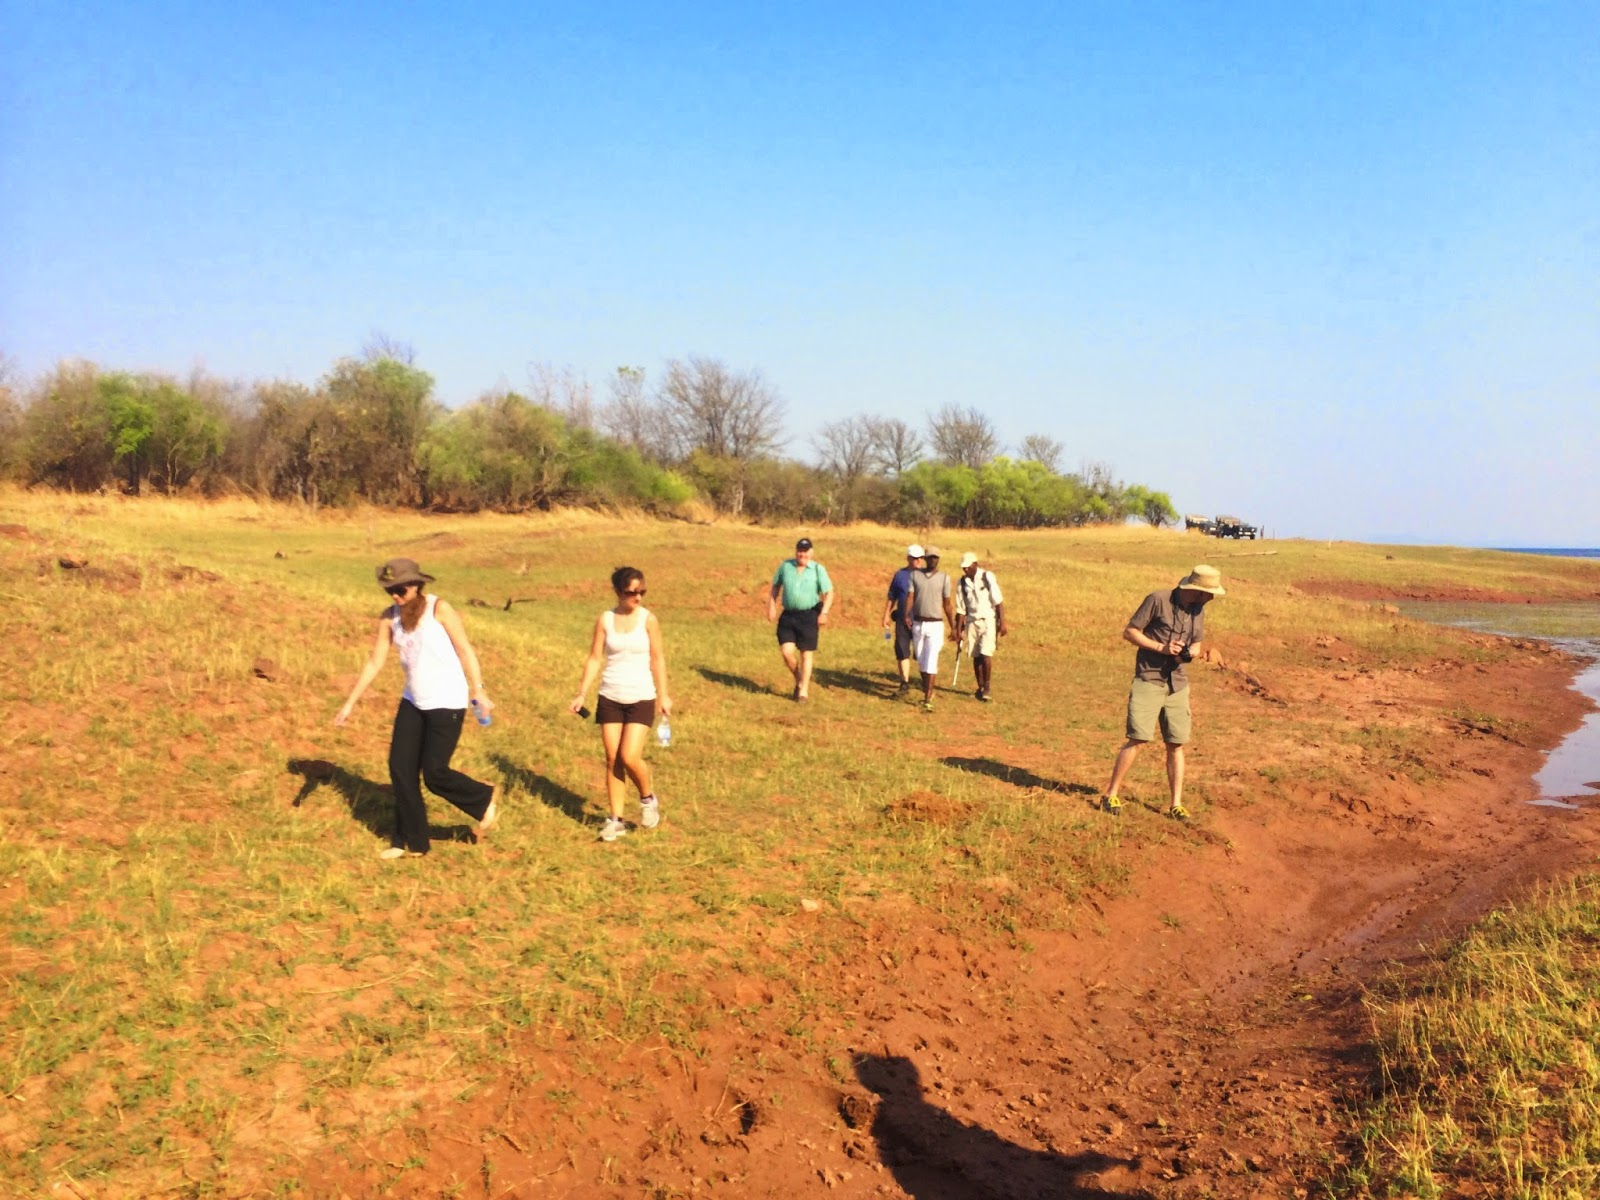 On foot in search of lions - Matusadona National Park